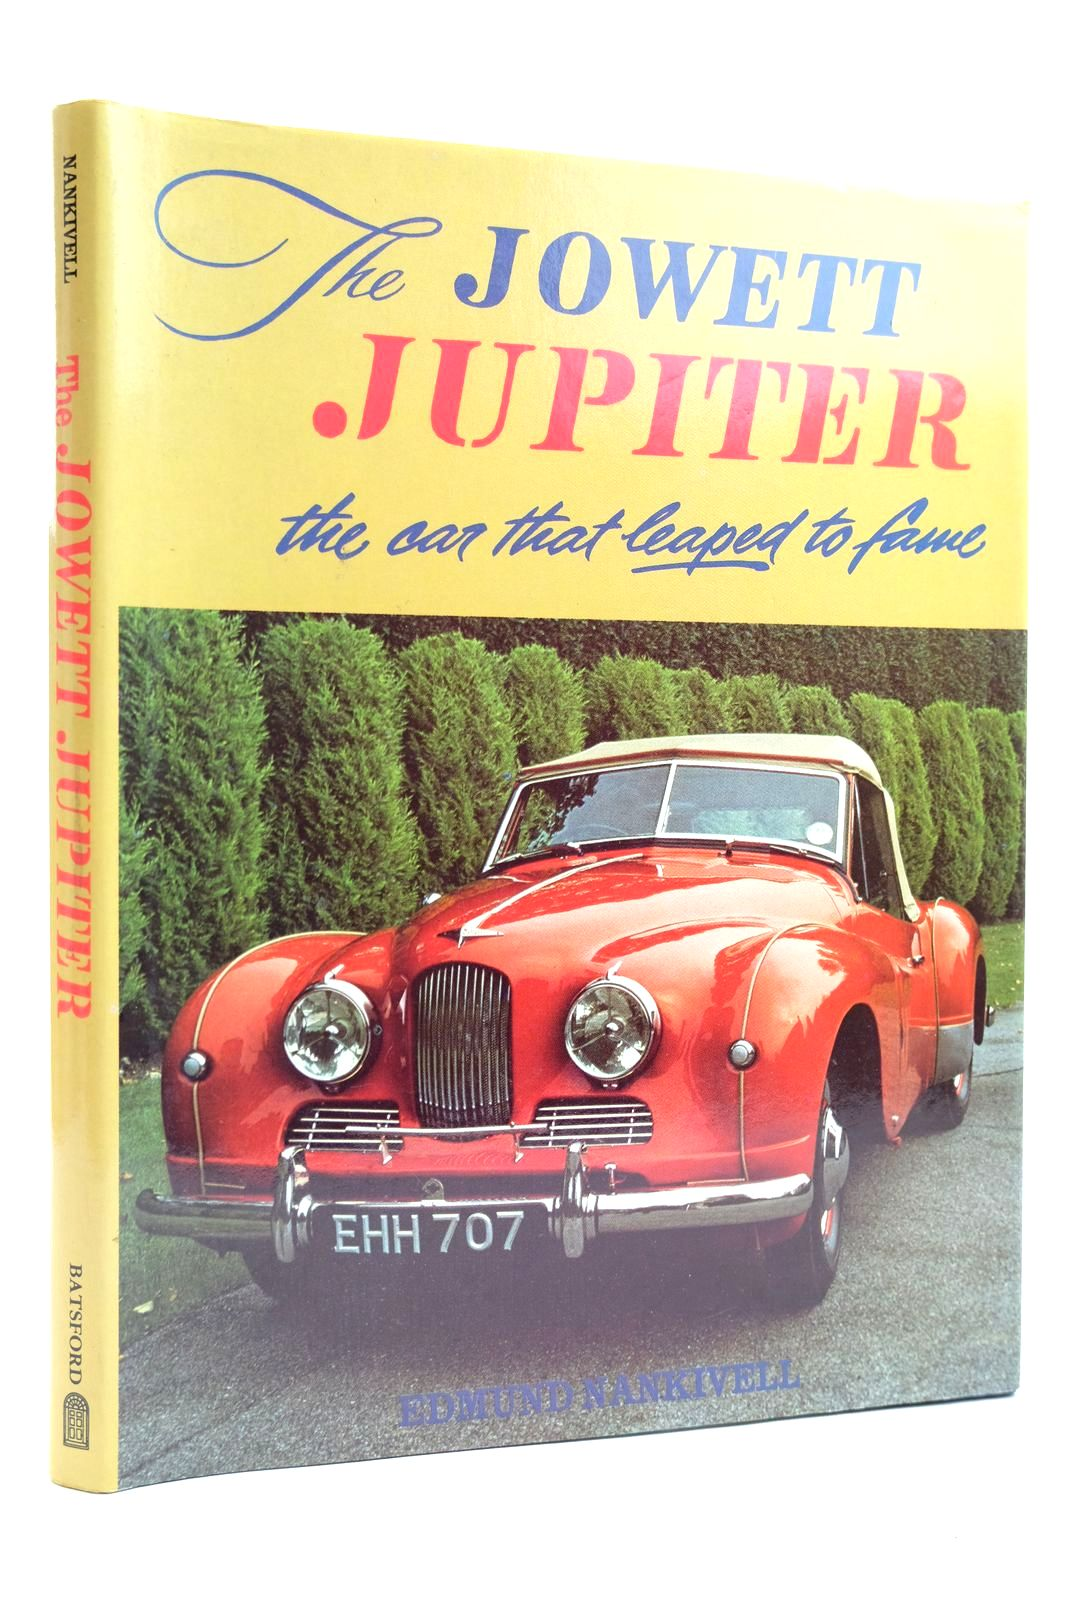 Photo of THE JOWETT JUPITER THE CAR THAT LEAPED TO FAME- Stock Number: 2131827